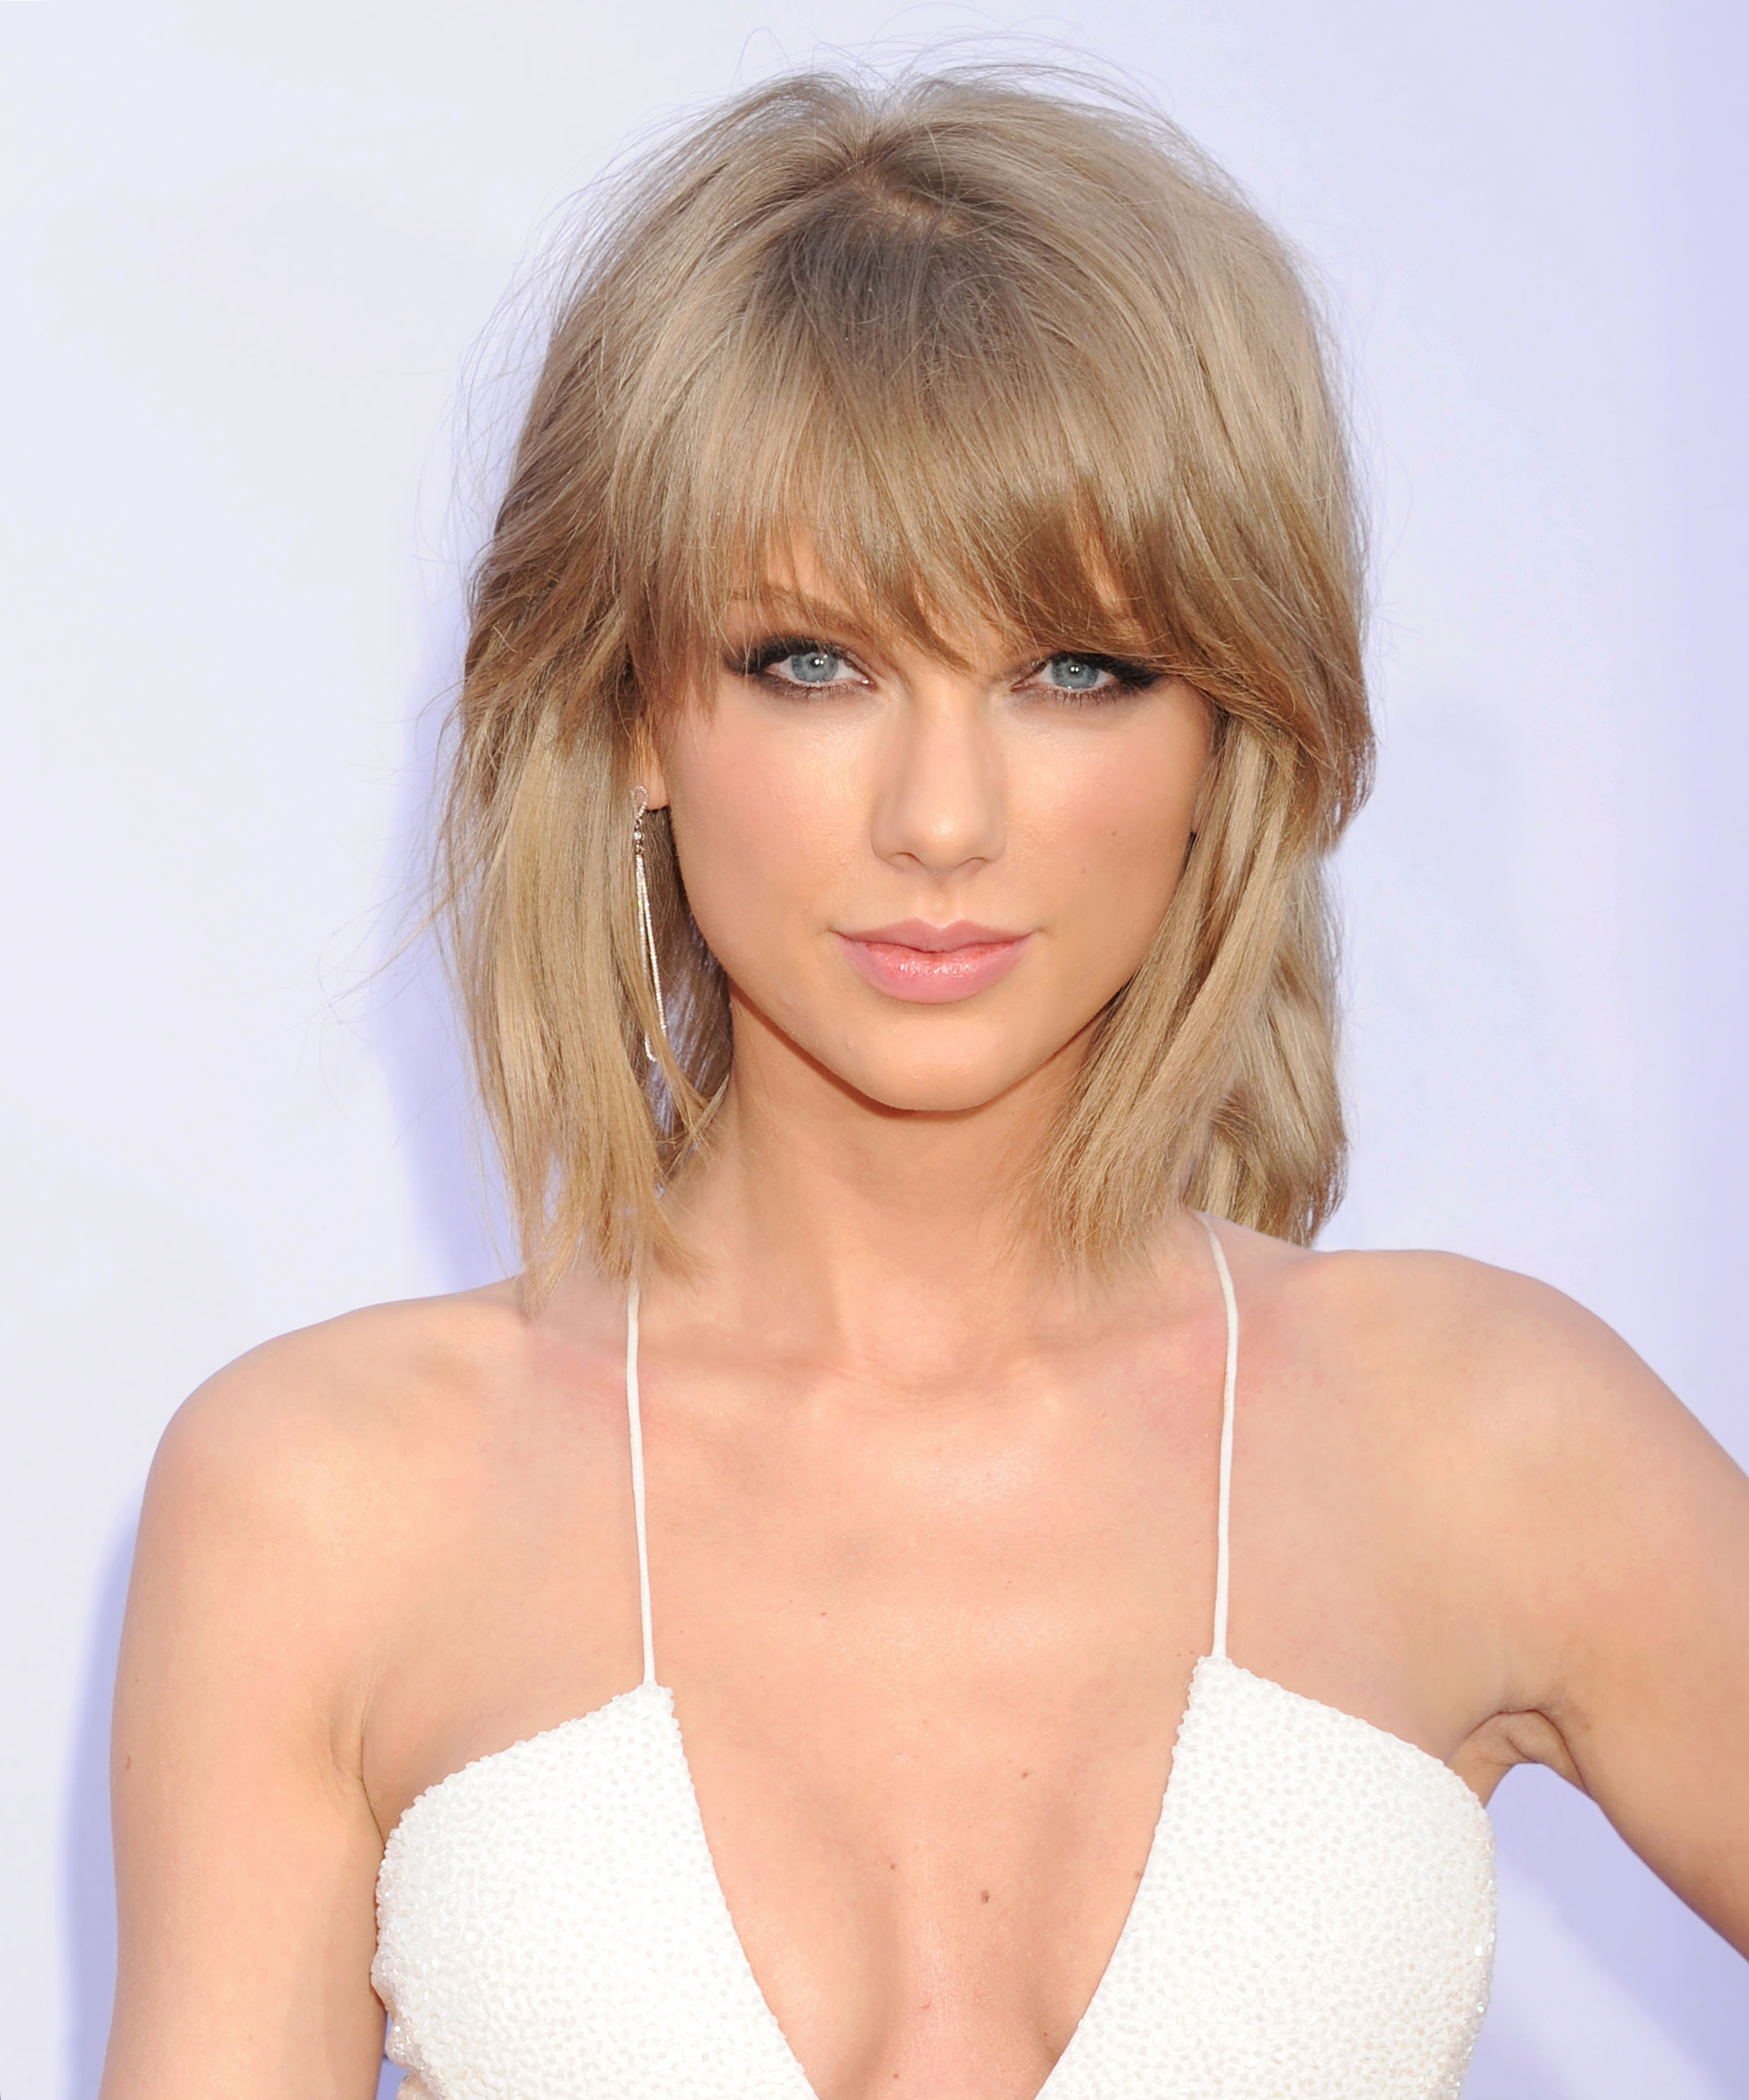 Taylor Swift Secretly Shared Her Full Album with 500 Fans—Here's What They're Saying